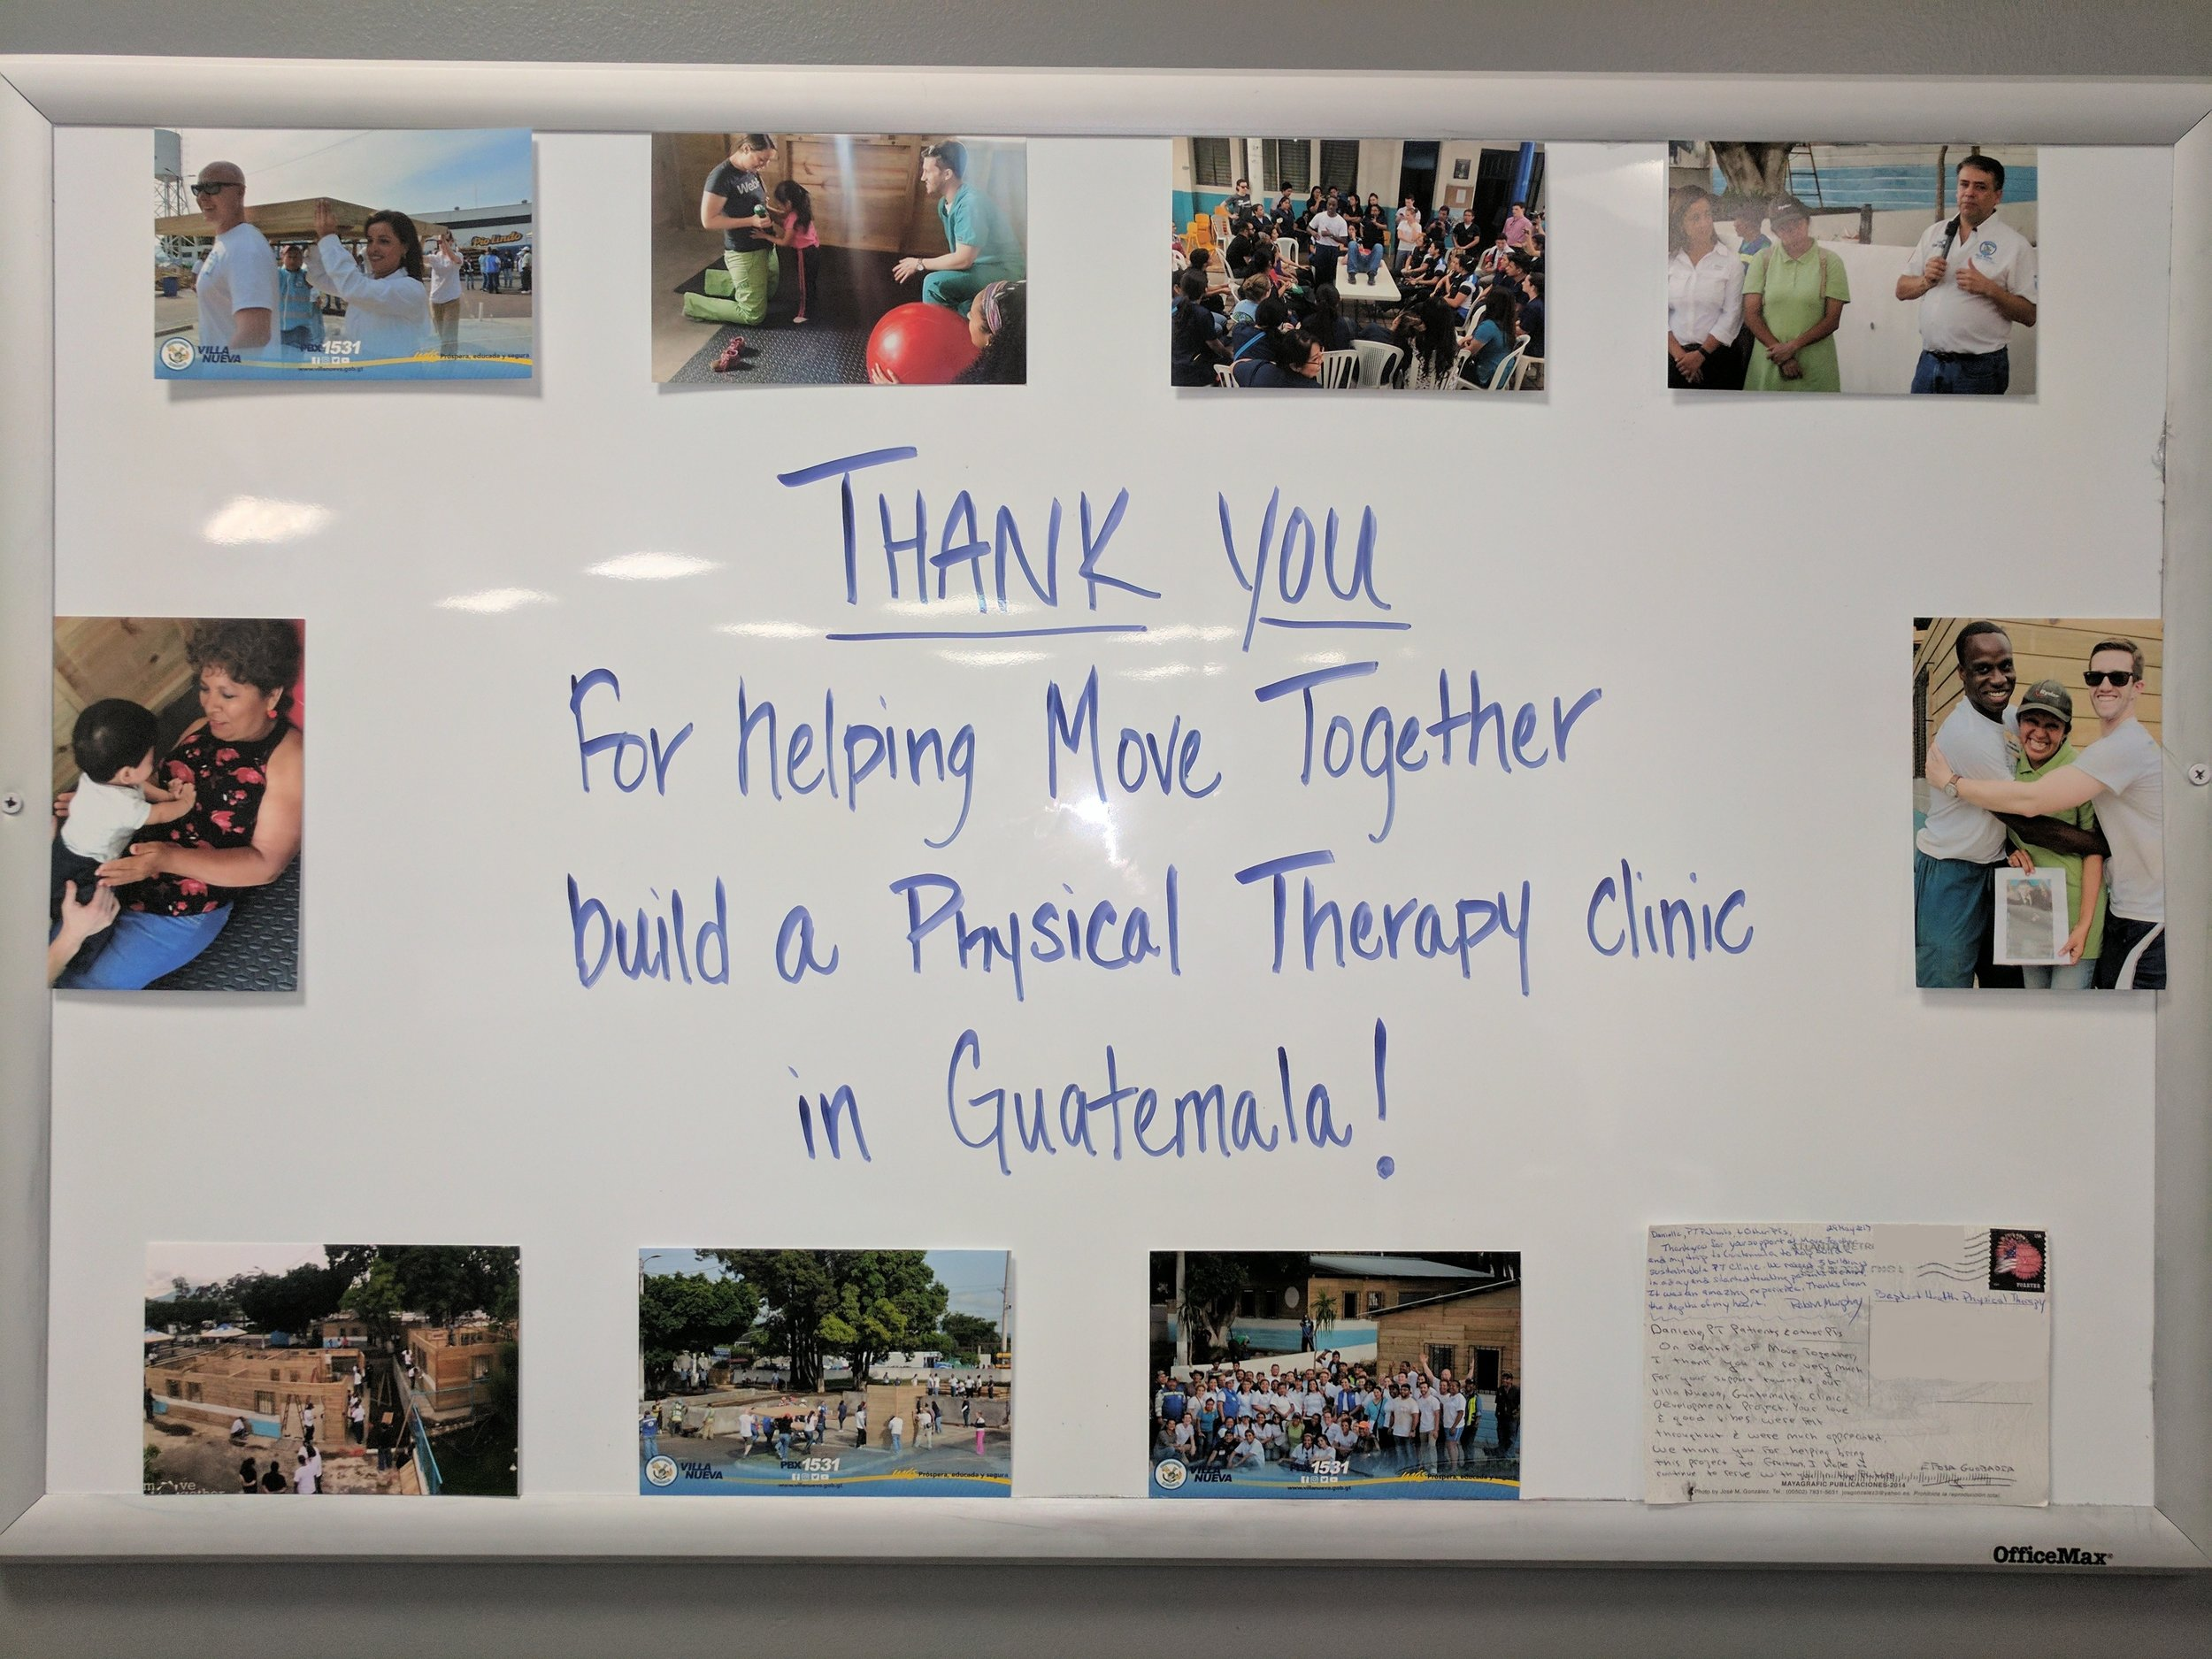 Danielle's clinic, Baptist Health PT, helped to equip the brand new physical therapy clinic in Villa Nueva, Guatemala!